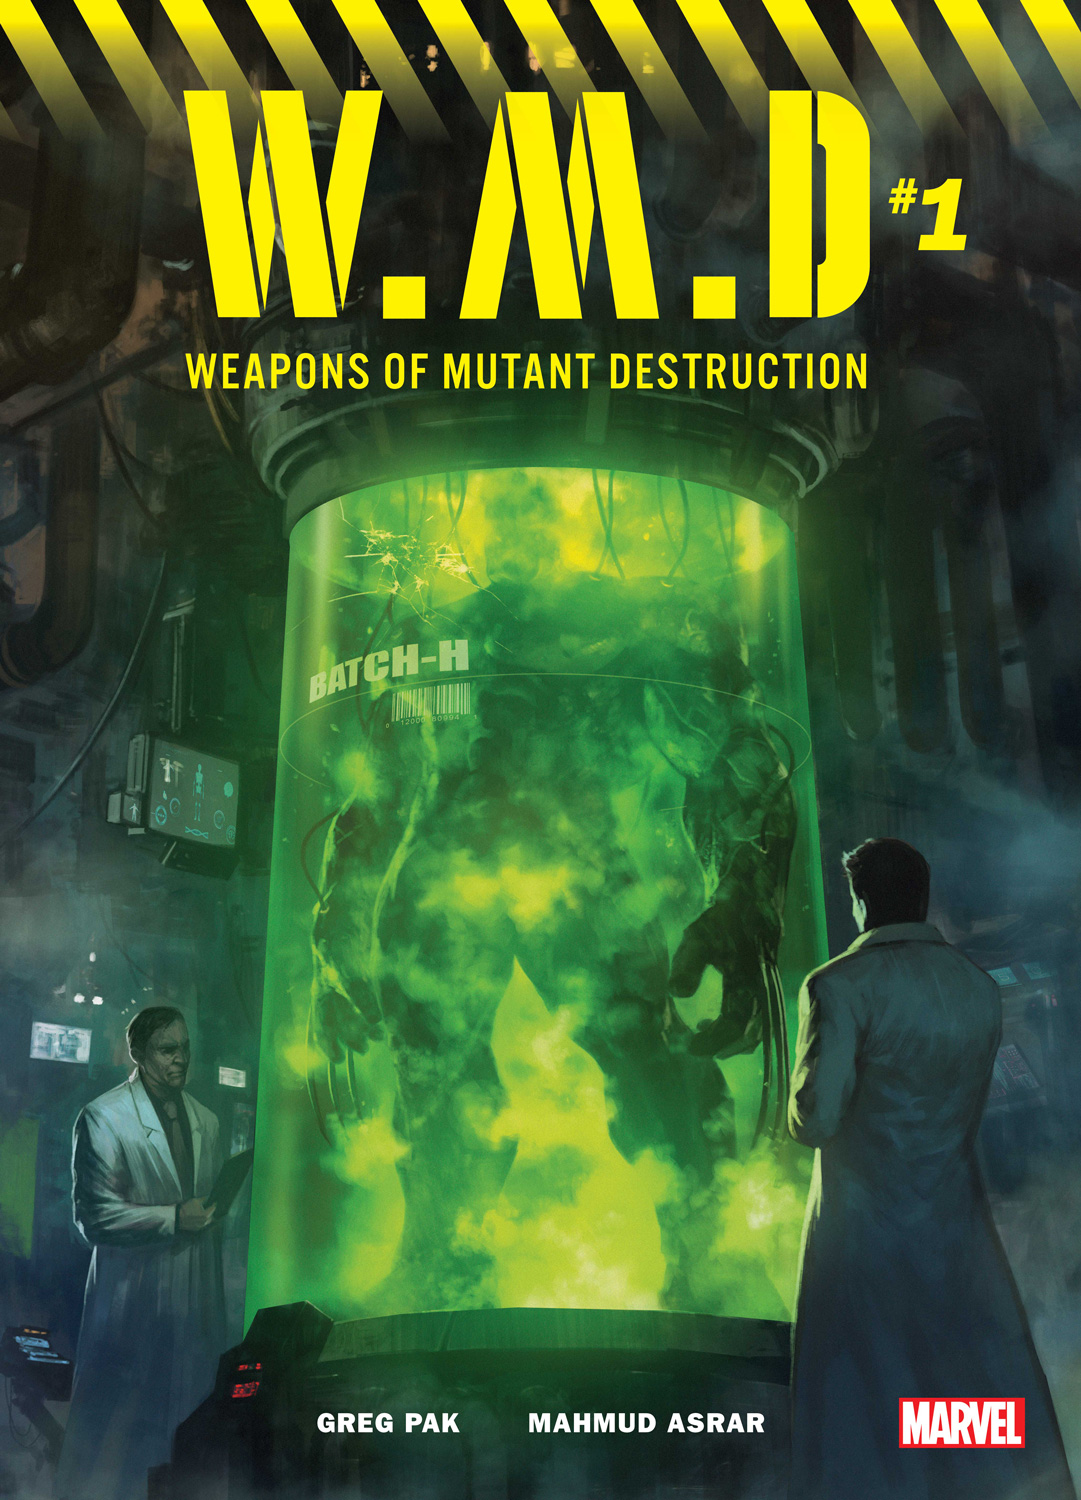 Weapons Of Mutant Destruction Is What That Hulk/Wolverine Hybrid Image Was Teasing